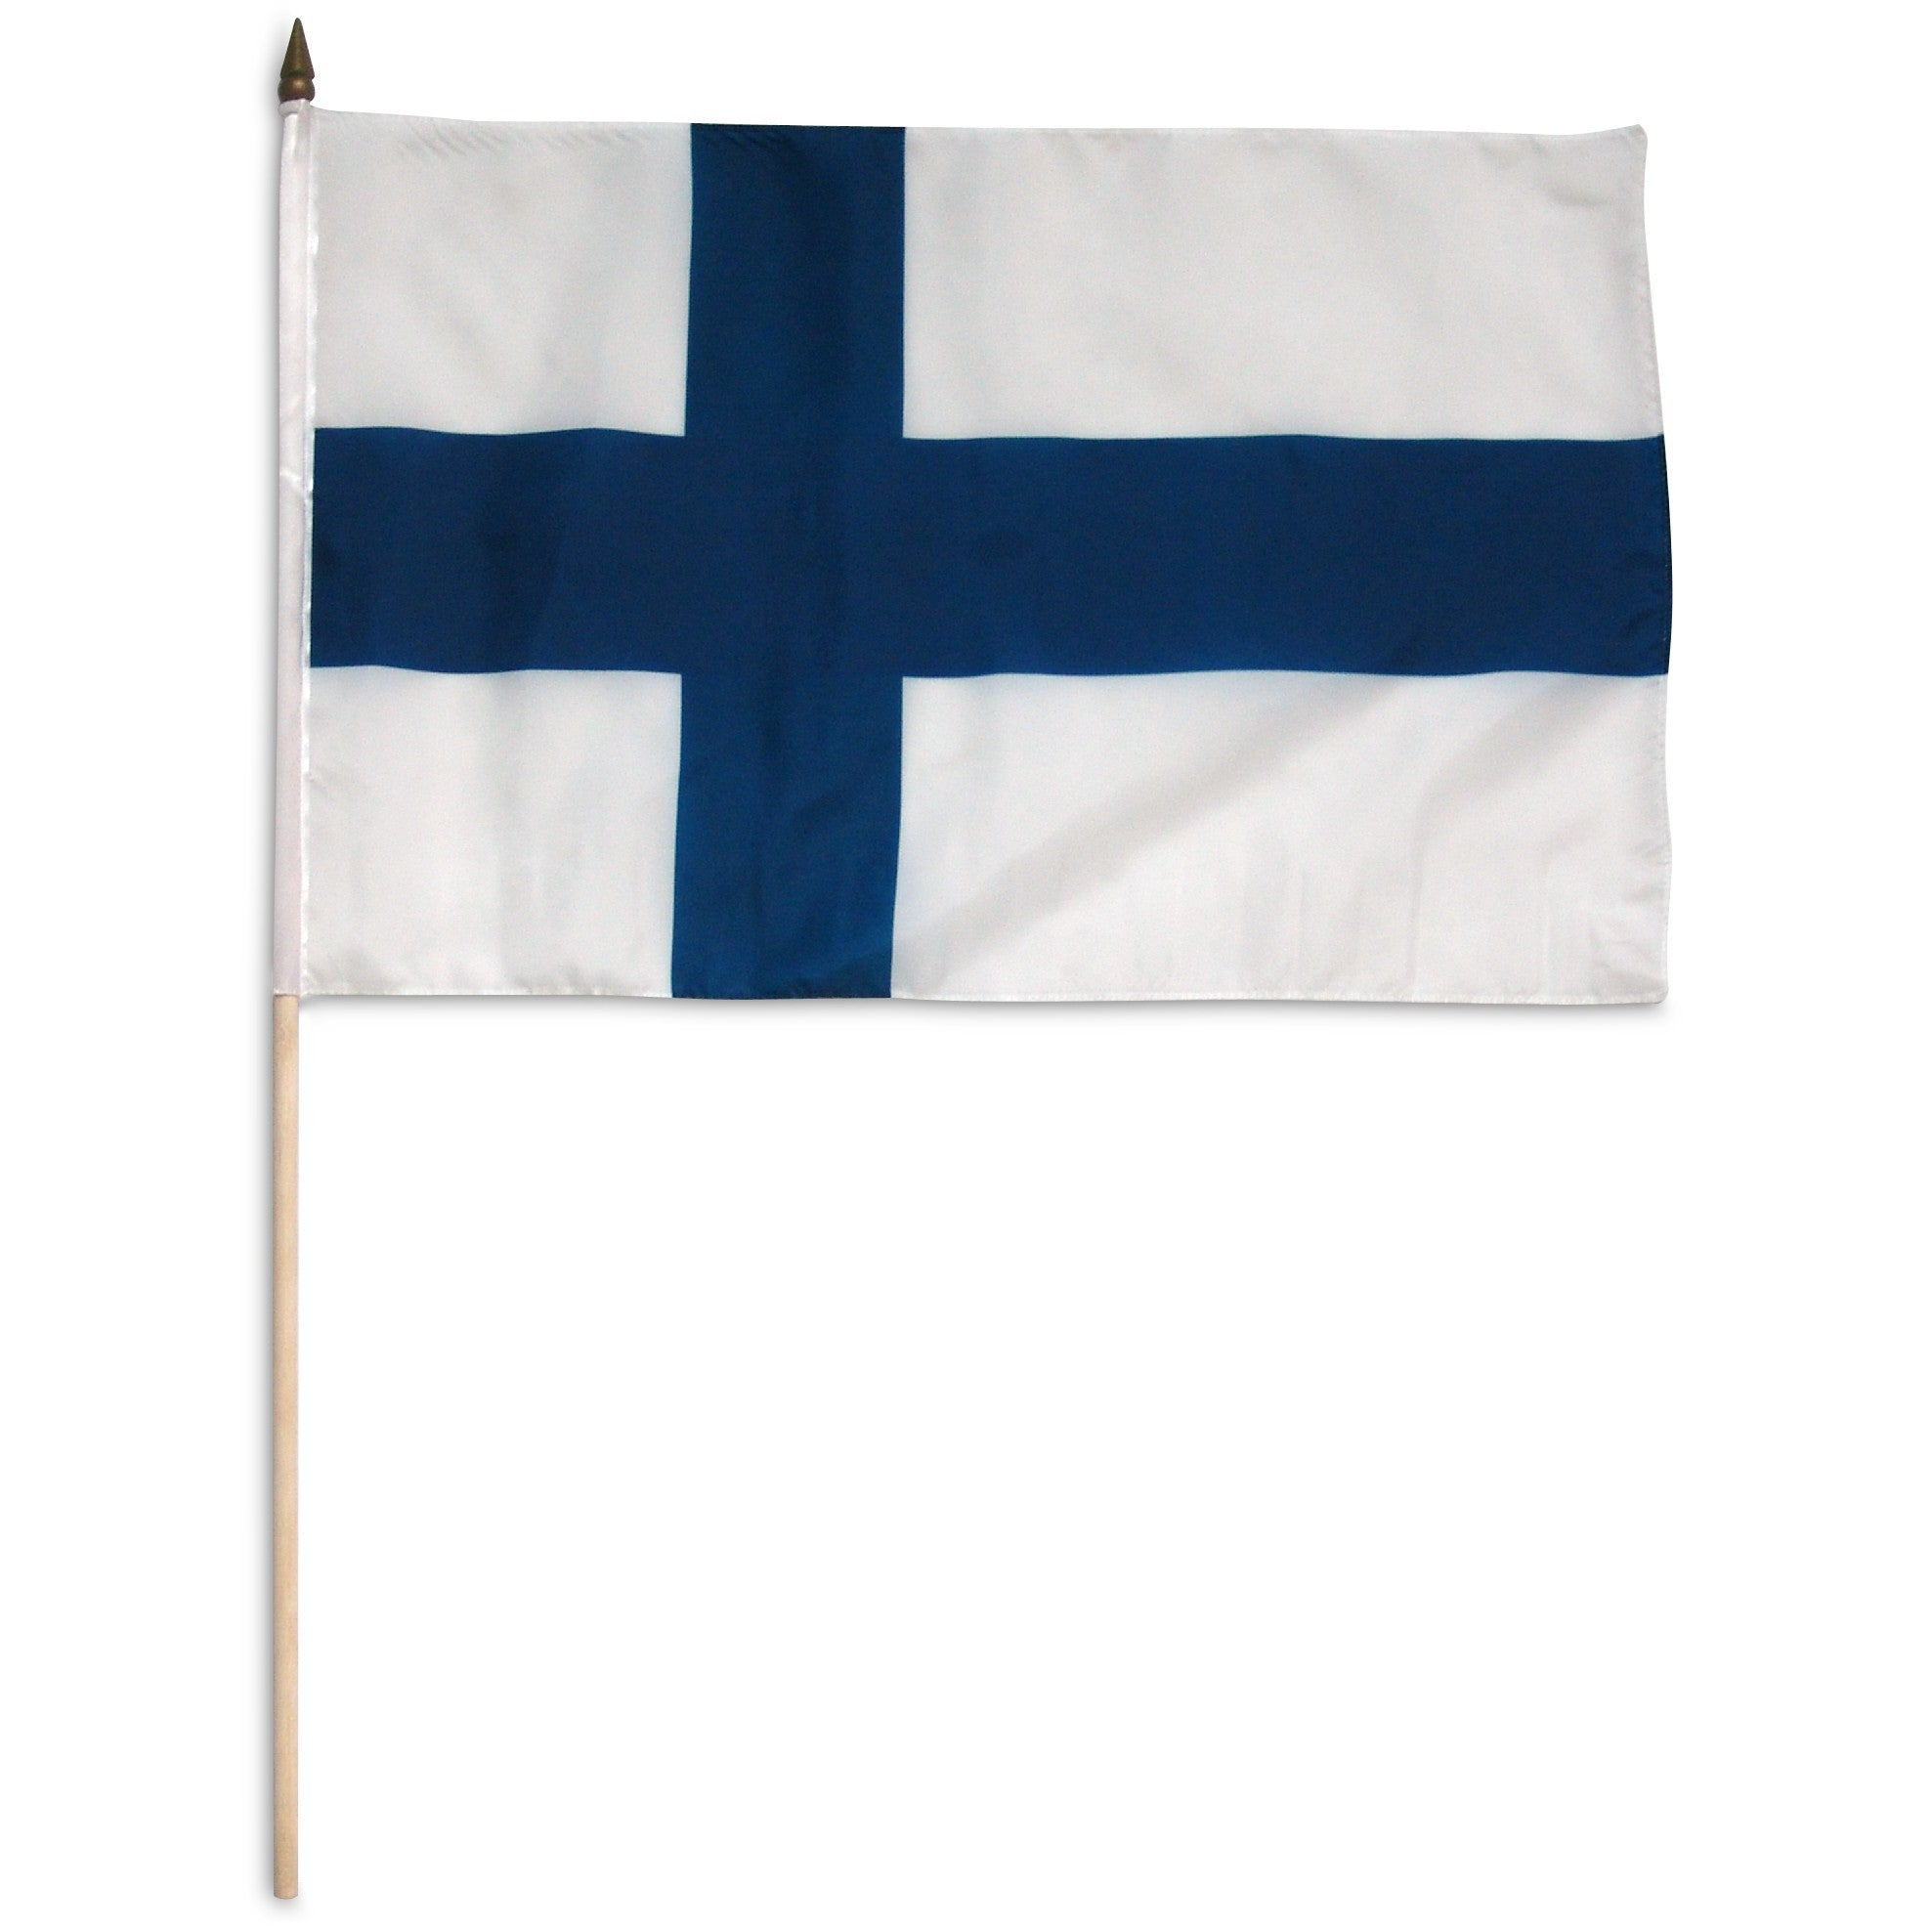 "Finland 12"" x 18"" Mounted Flag"